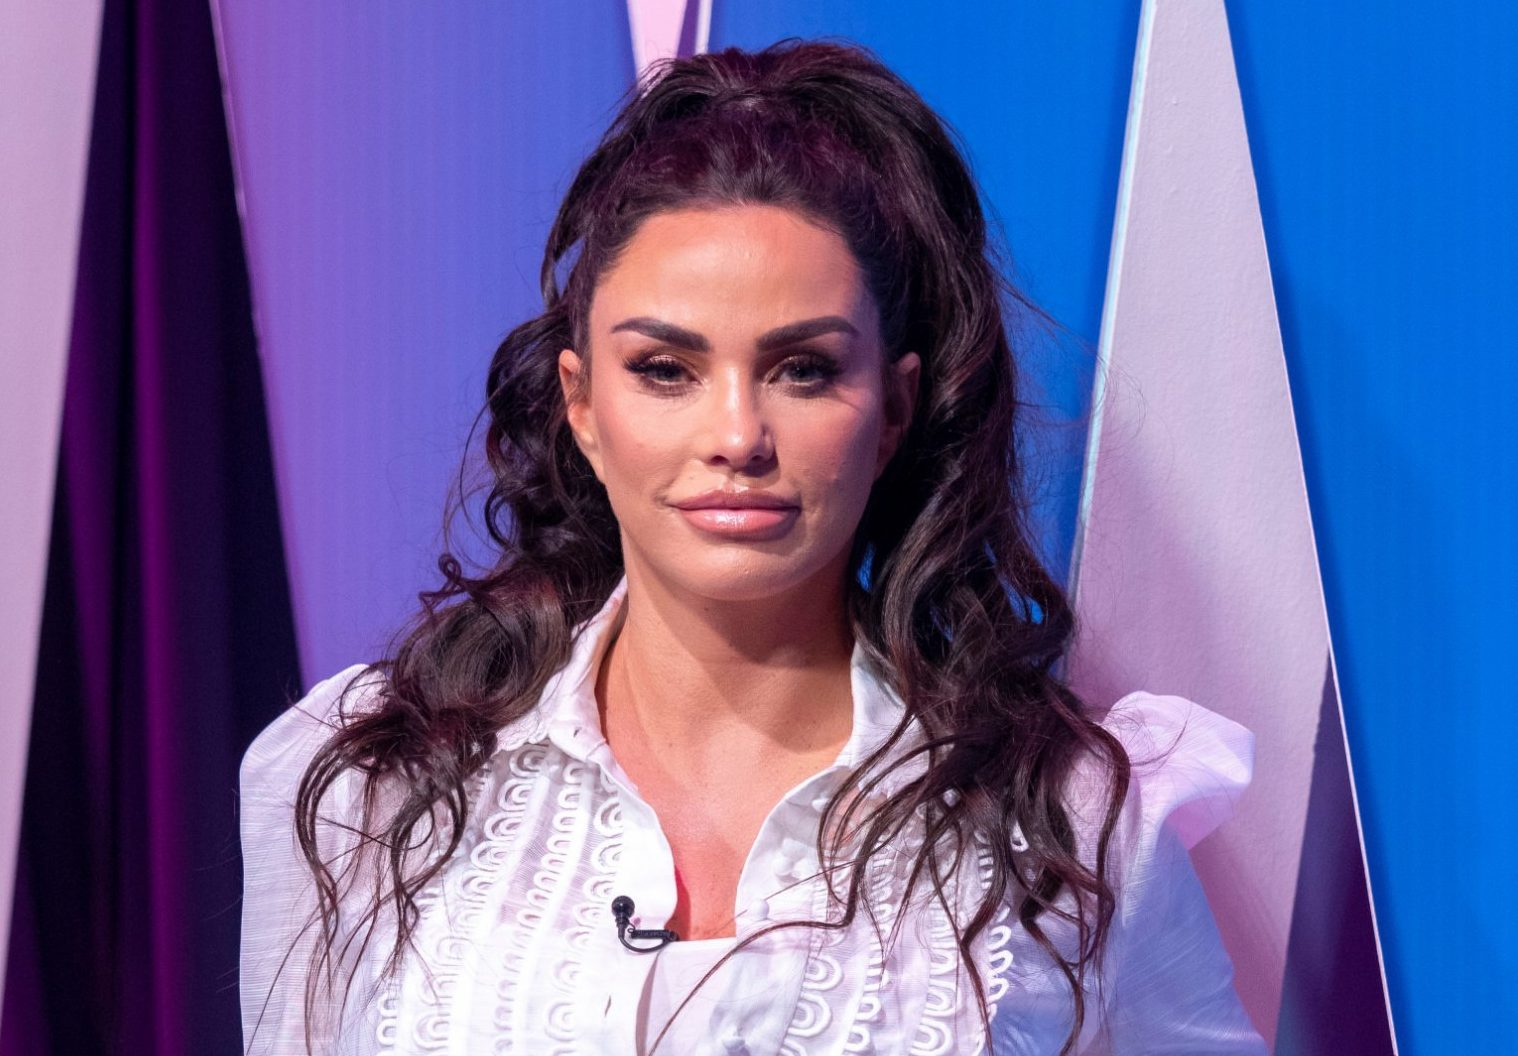 Editorial use usually Mandatory Credit: Photo by Ken McKay/ITV/REX (10073106i) Katie Price 'Loose Women' TV show, London, UK - 25 Jan 2019 CELEB GUEST: Katie Price is behind to set a record true You'd be tough pulpy to open a publication paper but saying a title about Katie Price. 2018 saw her matrimony mangle down down, while she also had to understanding with financial problems and her mum's depot illness. Things got so bad that she checked into rehab for PTSD after branch to splash and drugs to self-medicate. Today, she says she's in a improved place than ever and will be stuffing us in on what's been function in her life.